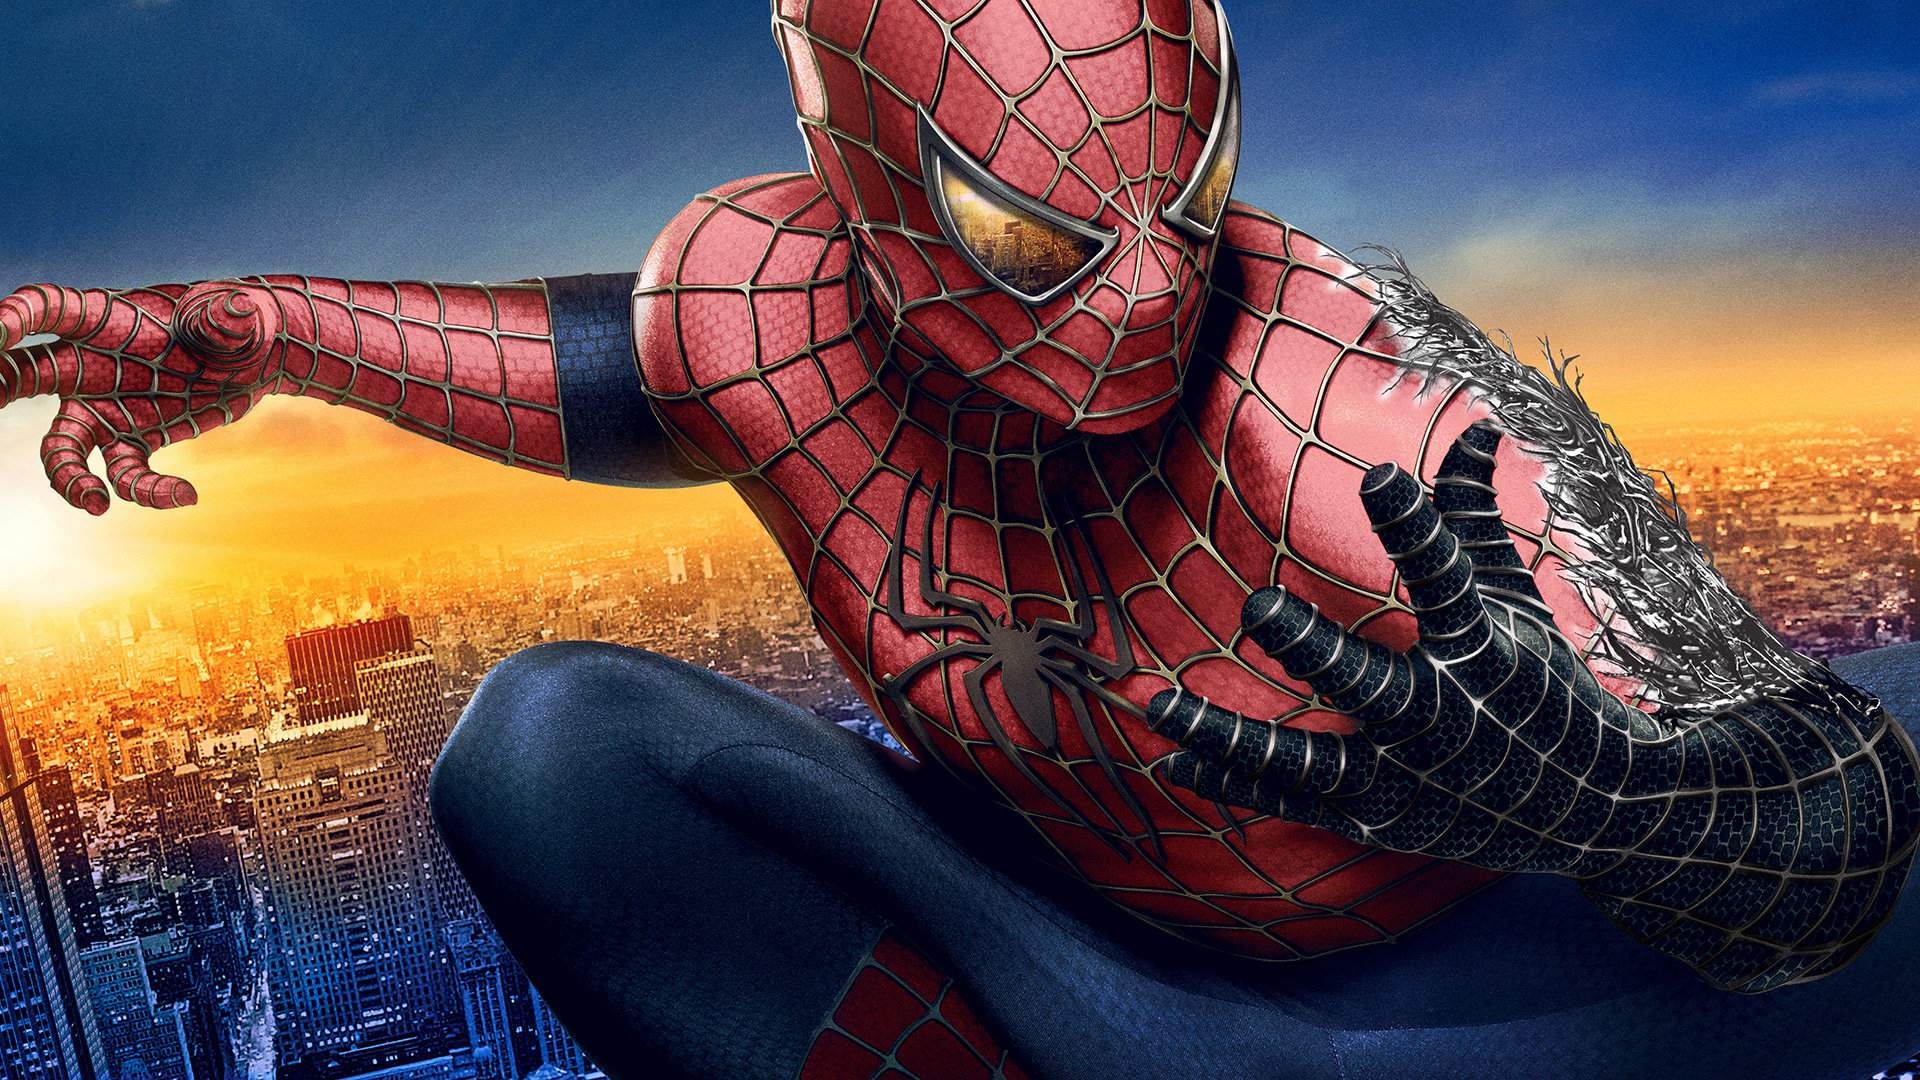 Spiderman 3 Hd Wallpapers 1080p: Download Full Hd 1080p Spider-Man 3 Computer Wallpaper ID